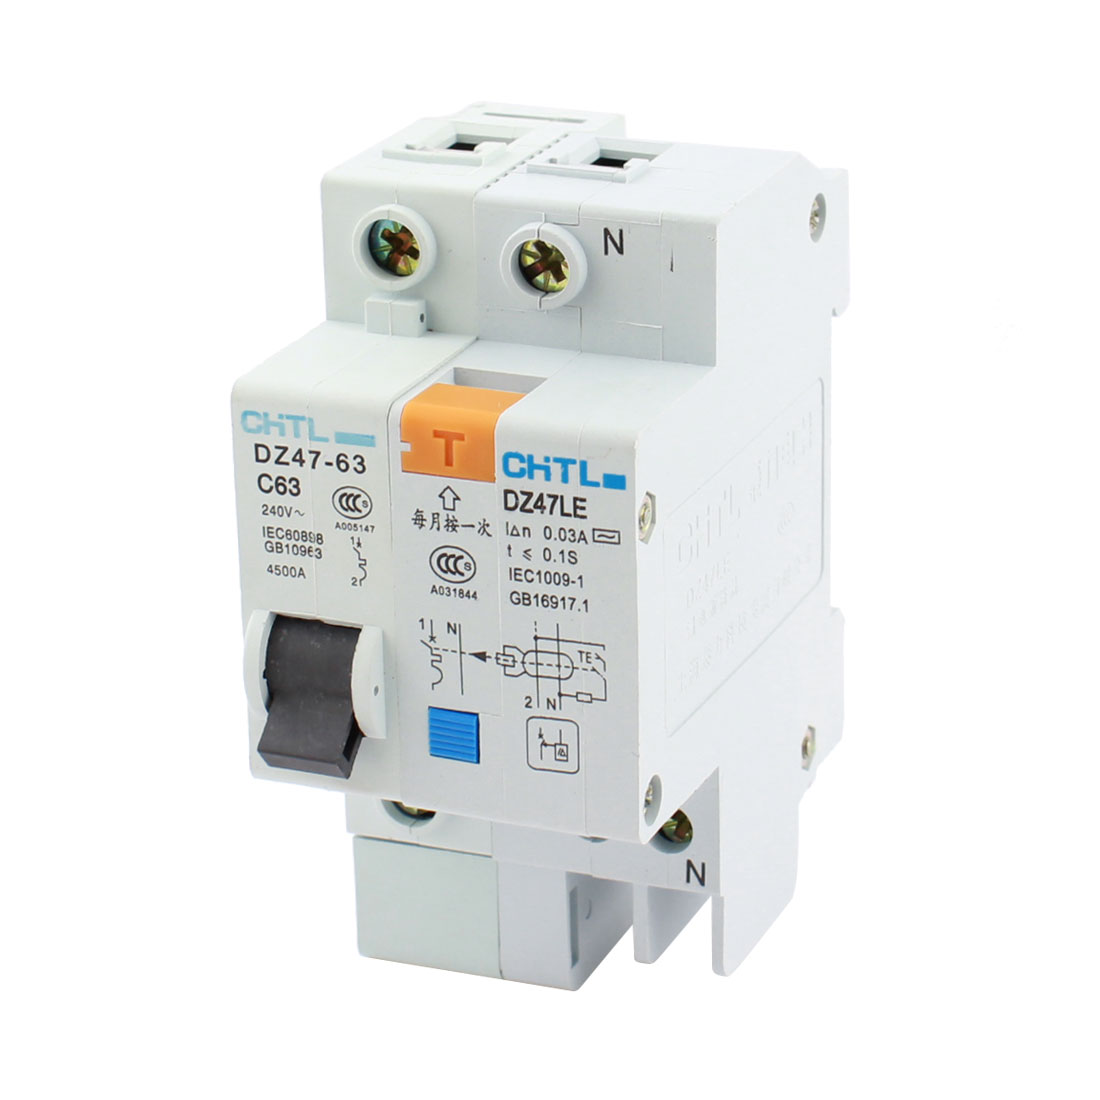 AC 240V 63A 4500A 35mm DIN Rail Mount Single Pole On/Off Switch Mini Circuit Breaker Overload Protector DZ47-63